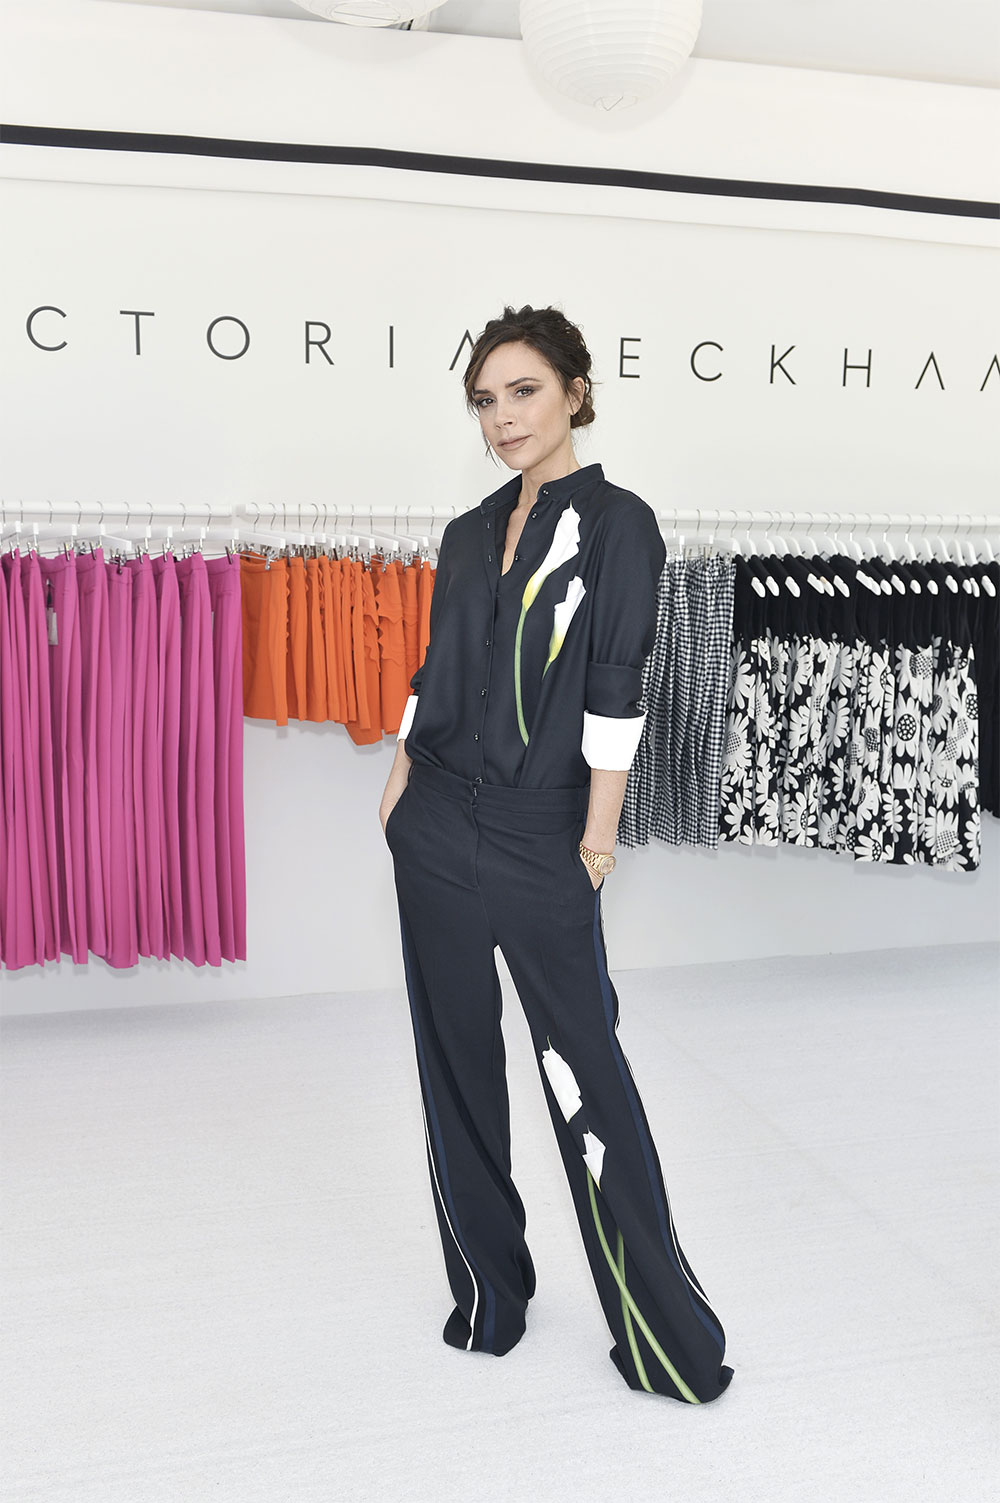 victoria beckham fashion event outfit